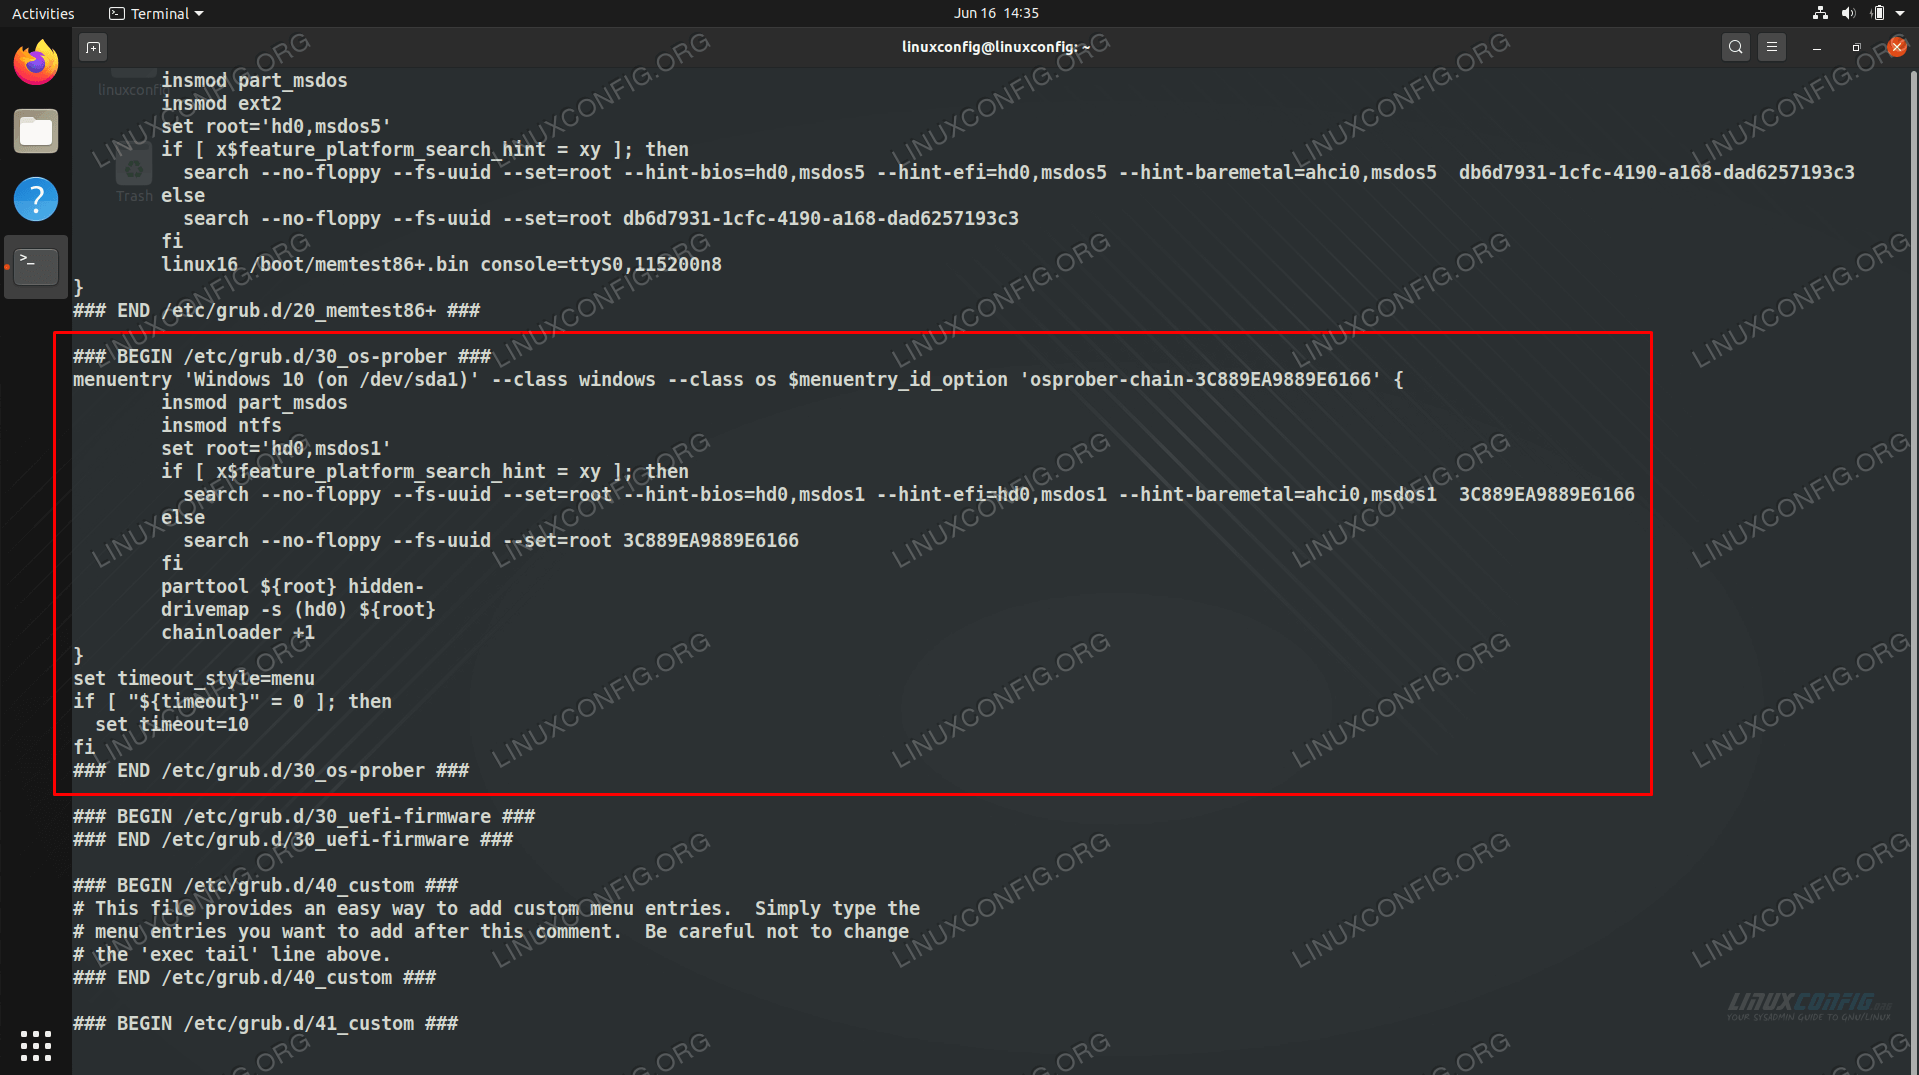 Windows 10 listed in the grub.cfg file